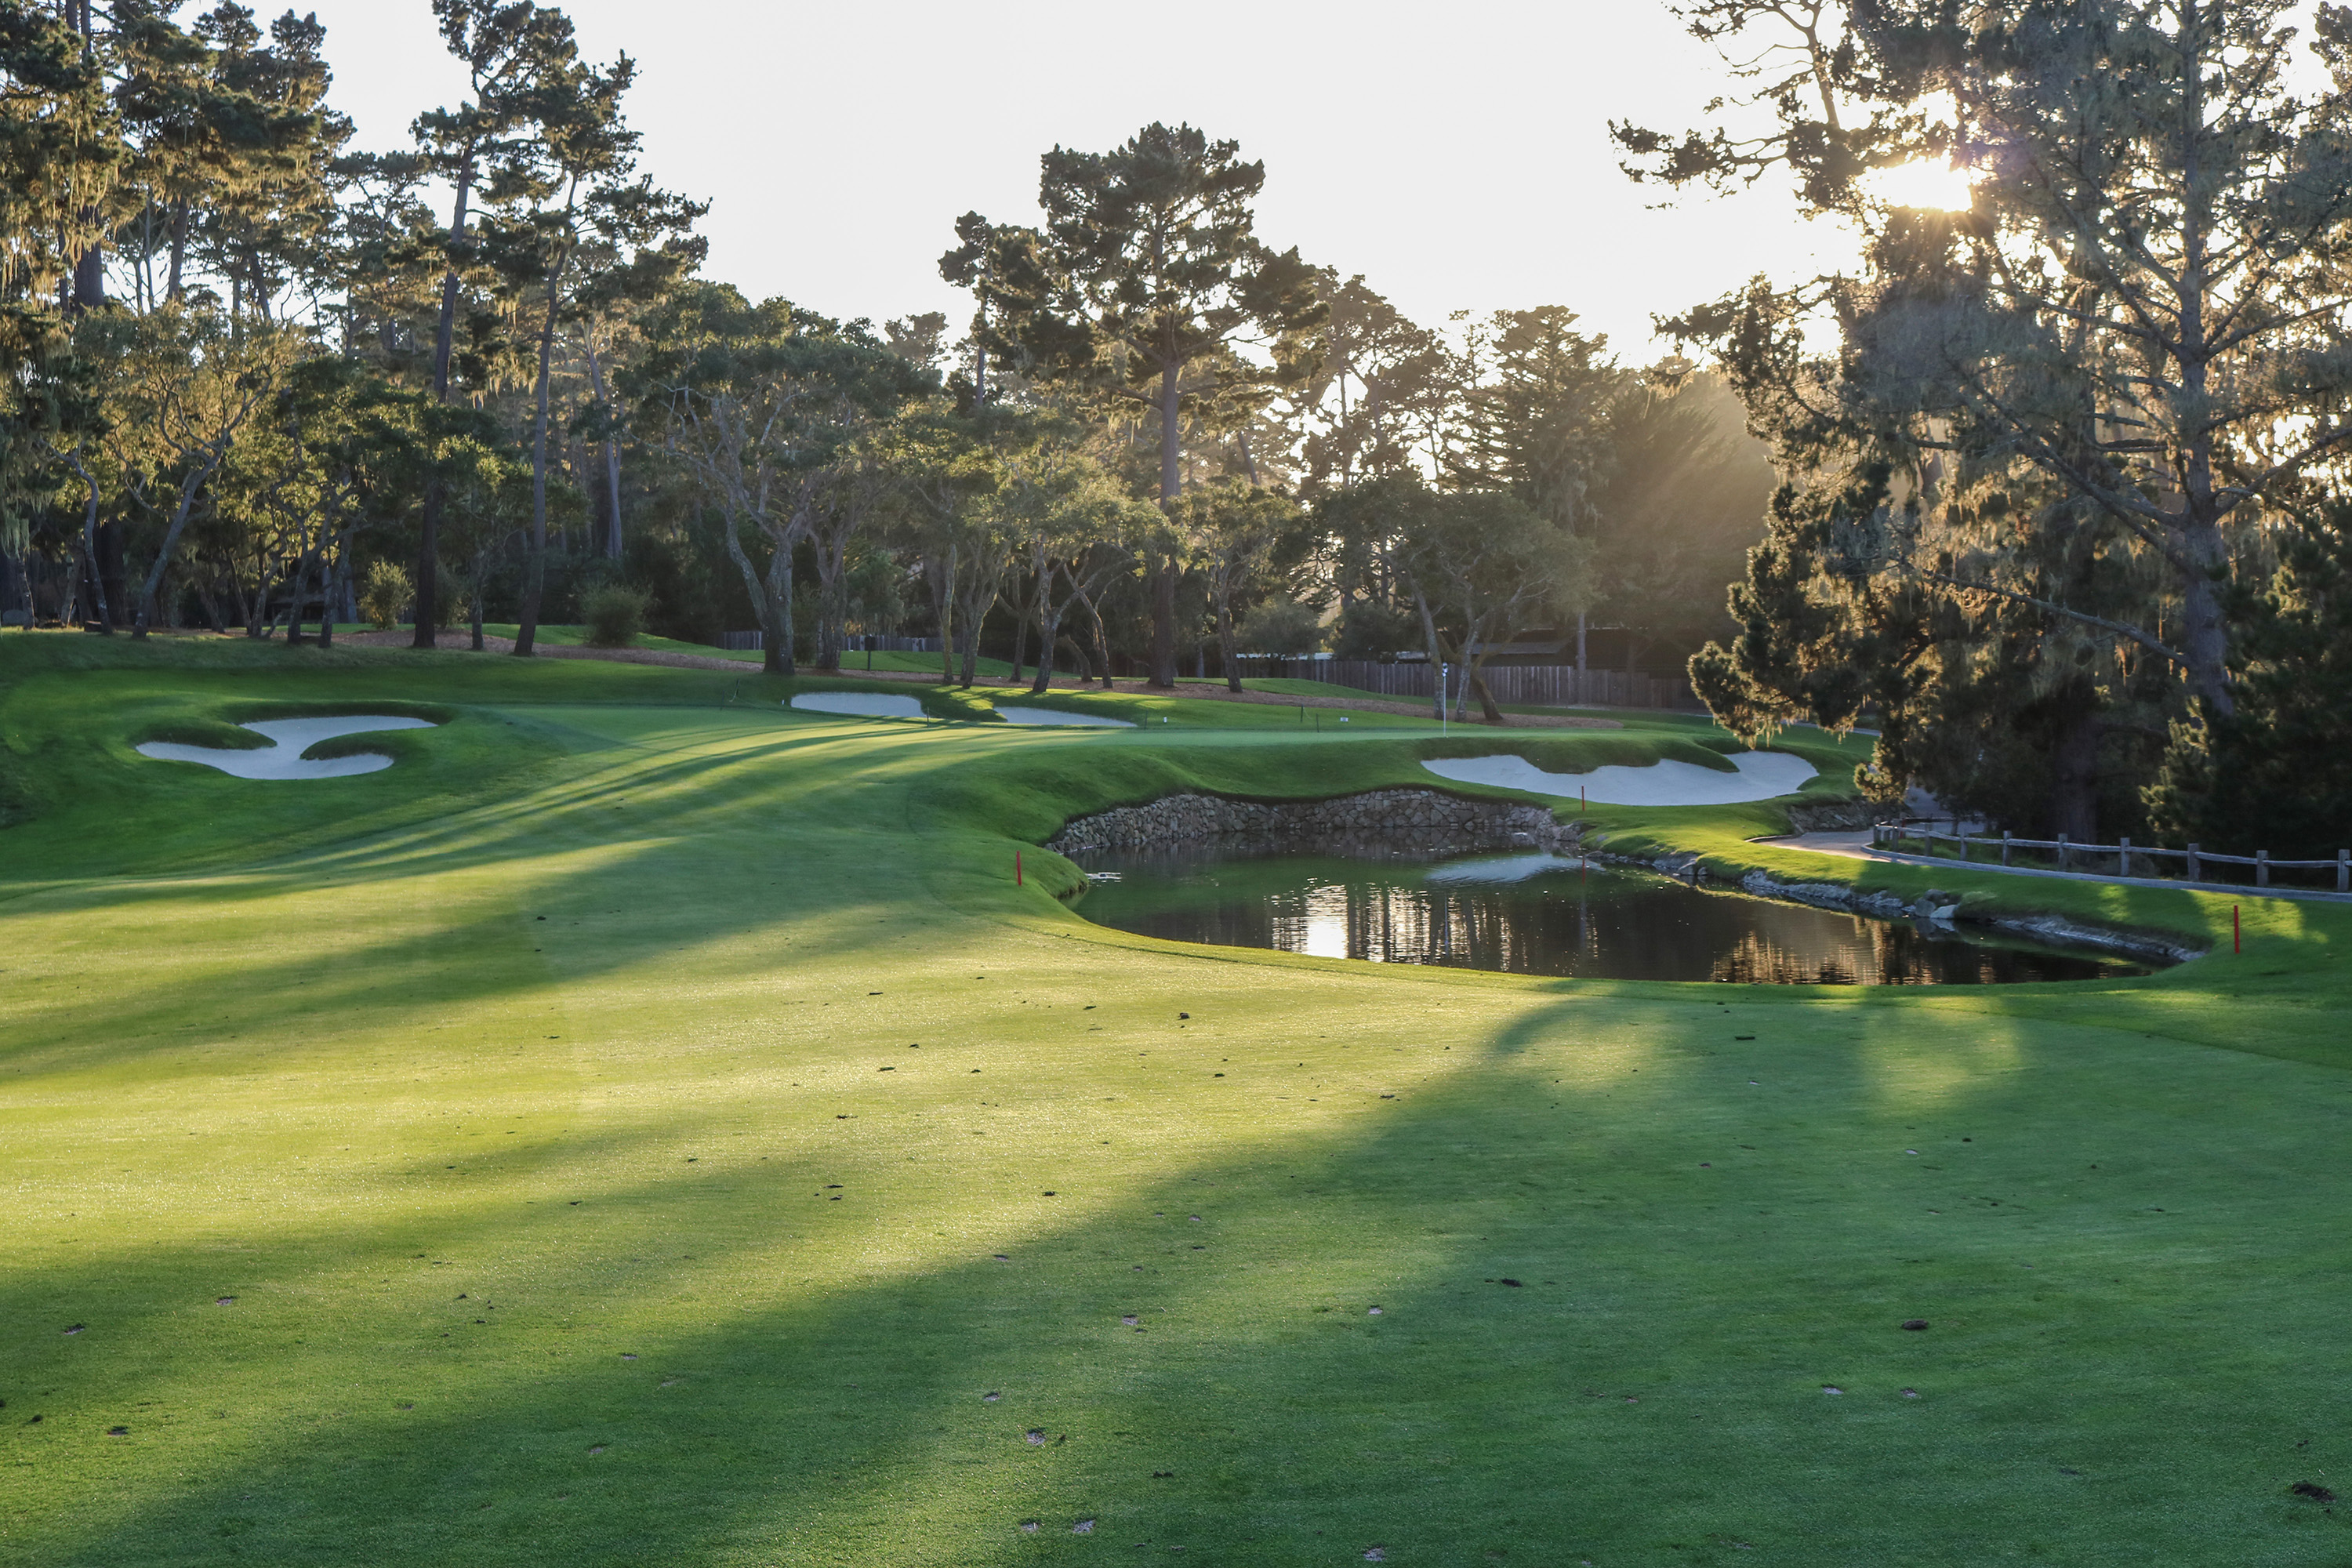 14th hole at Spyglass Hill